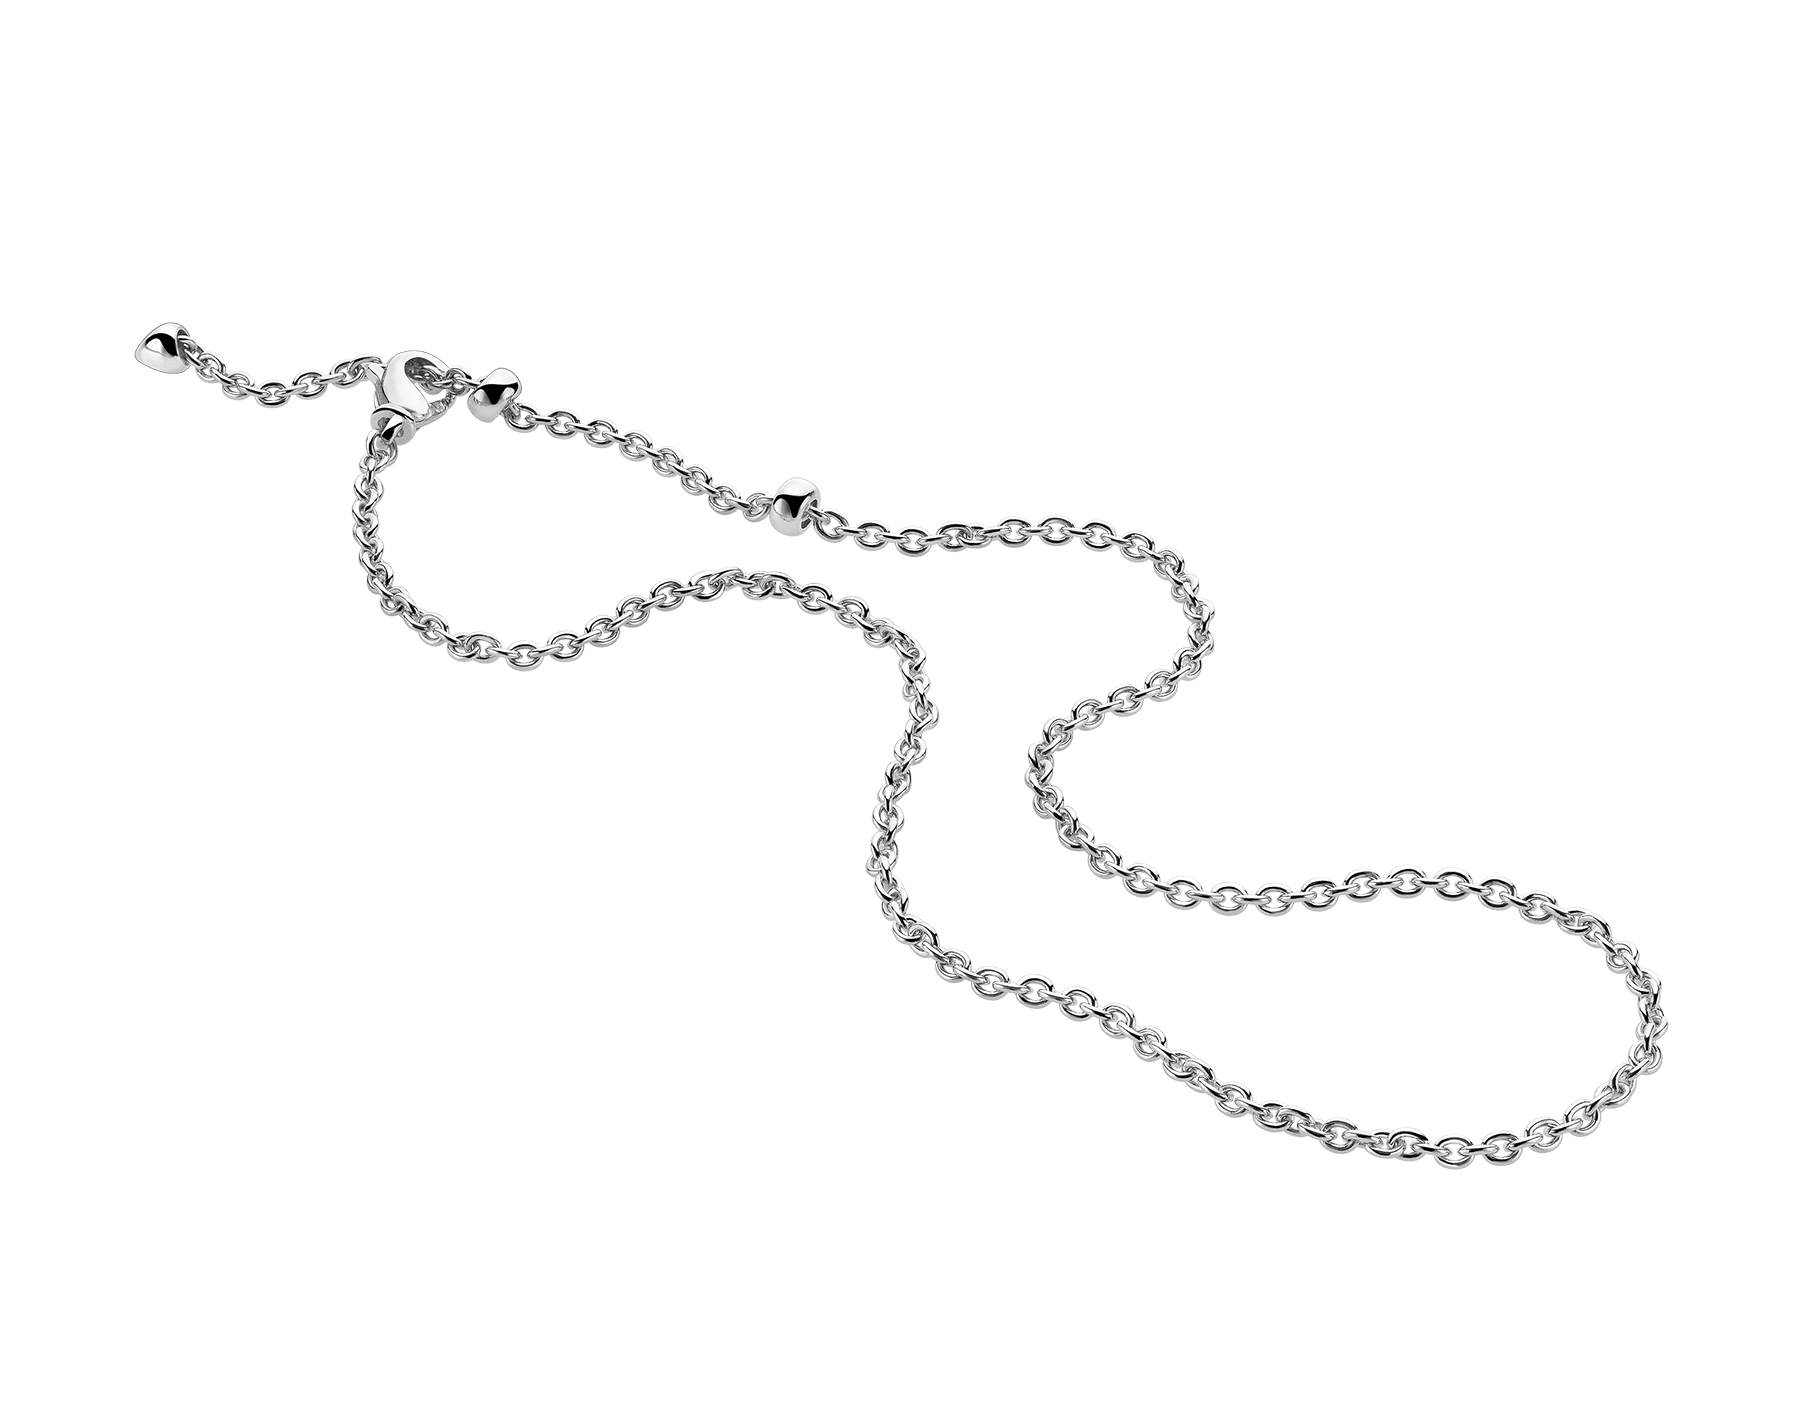 Catene chain in 18 kt white gold 335073 image 1